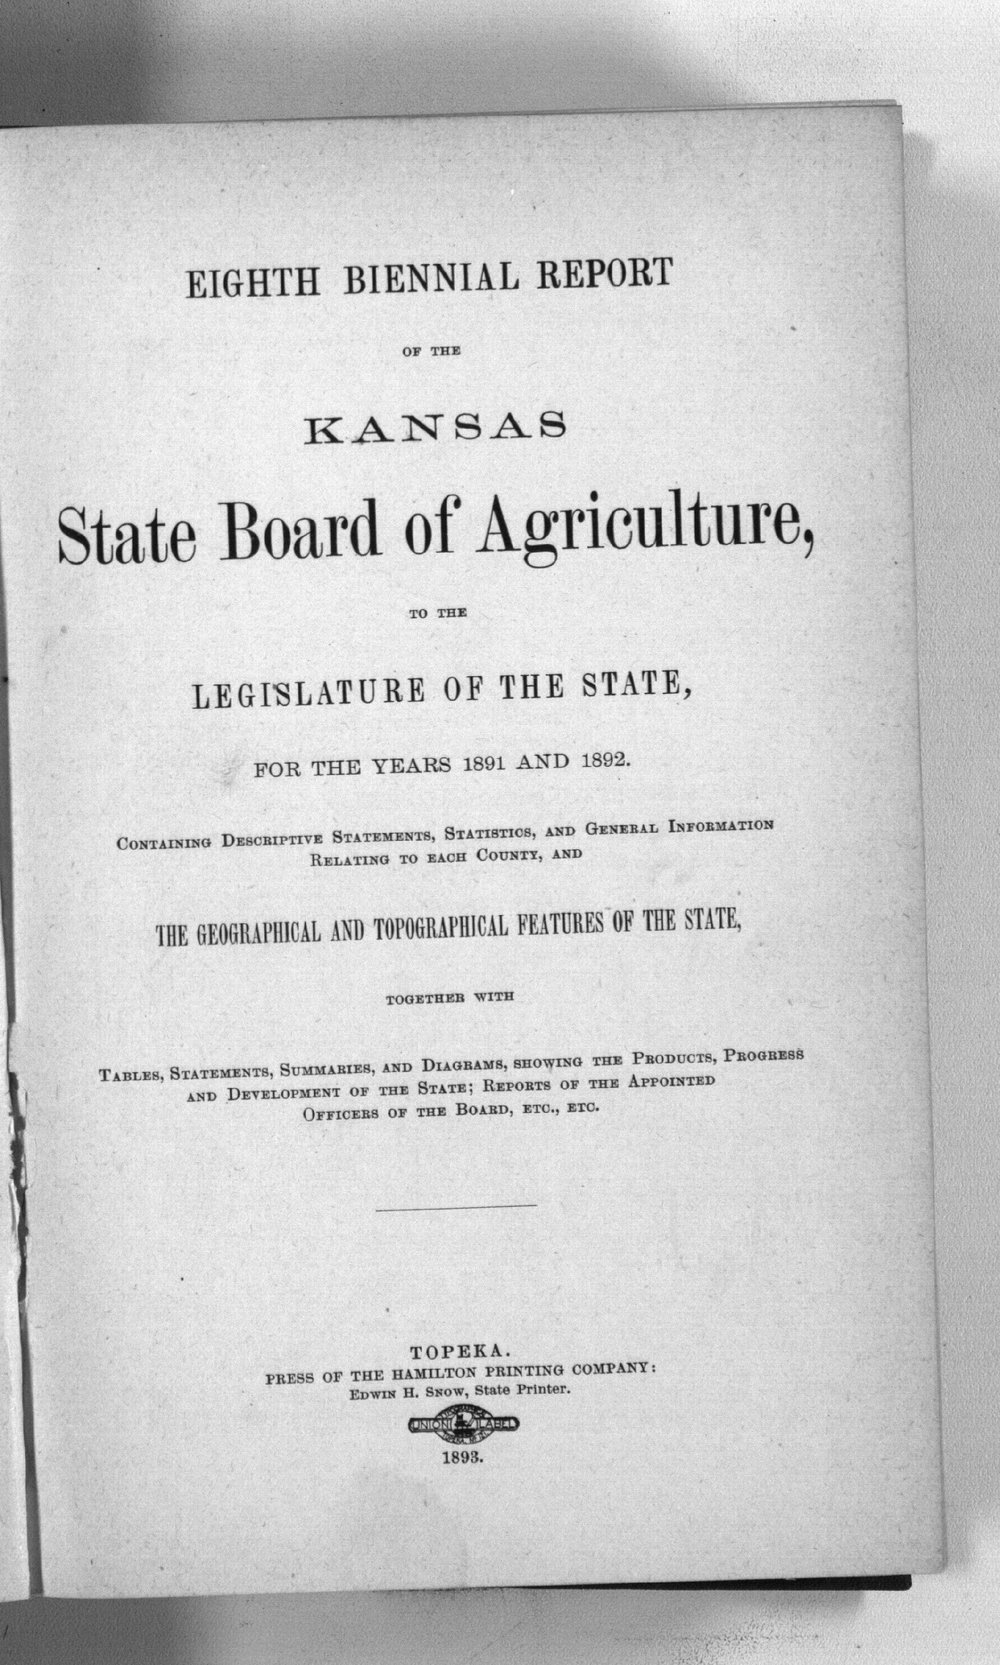 Eighth biennial report of the Kansas State Board of Agriculture, 1891-1892 - Title Page, Eighth Biennial, v13, 1891-1892